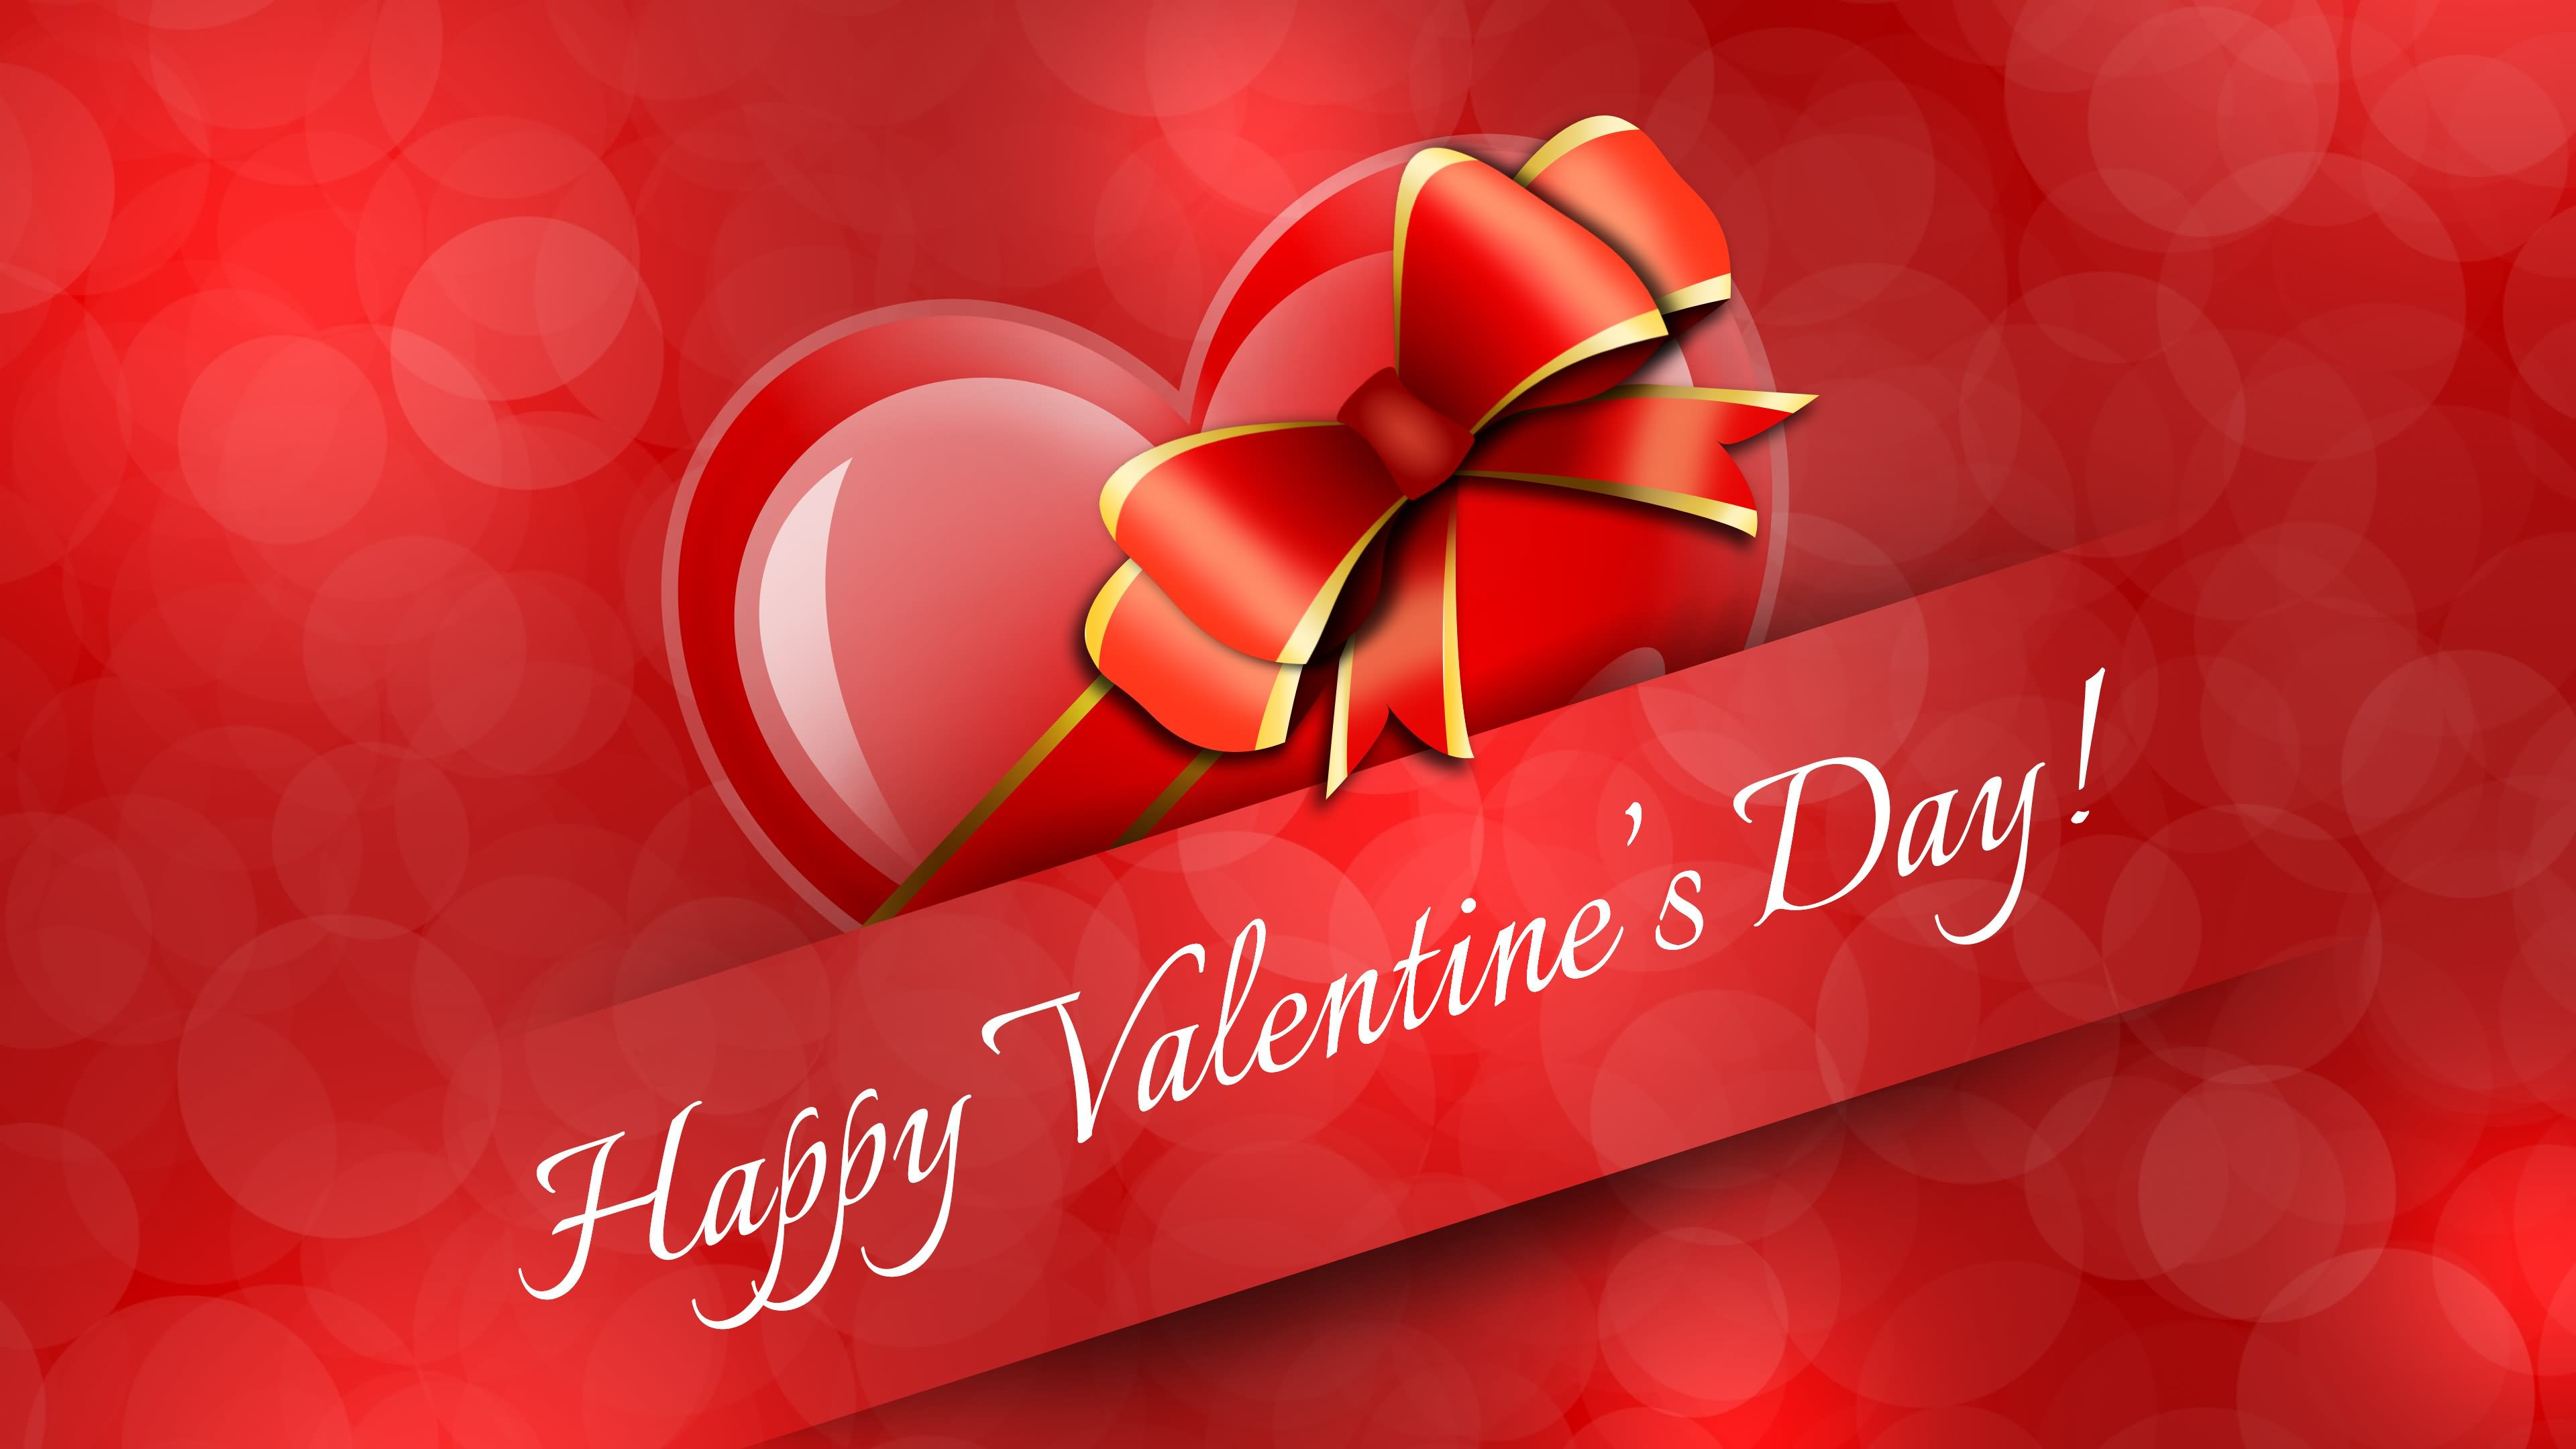 happy valentines day hd wallpaper image